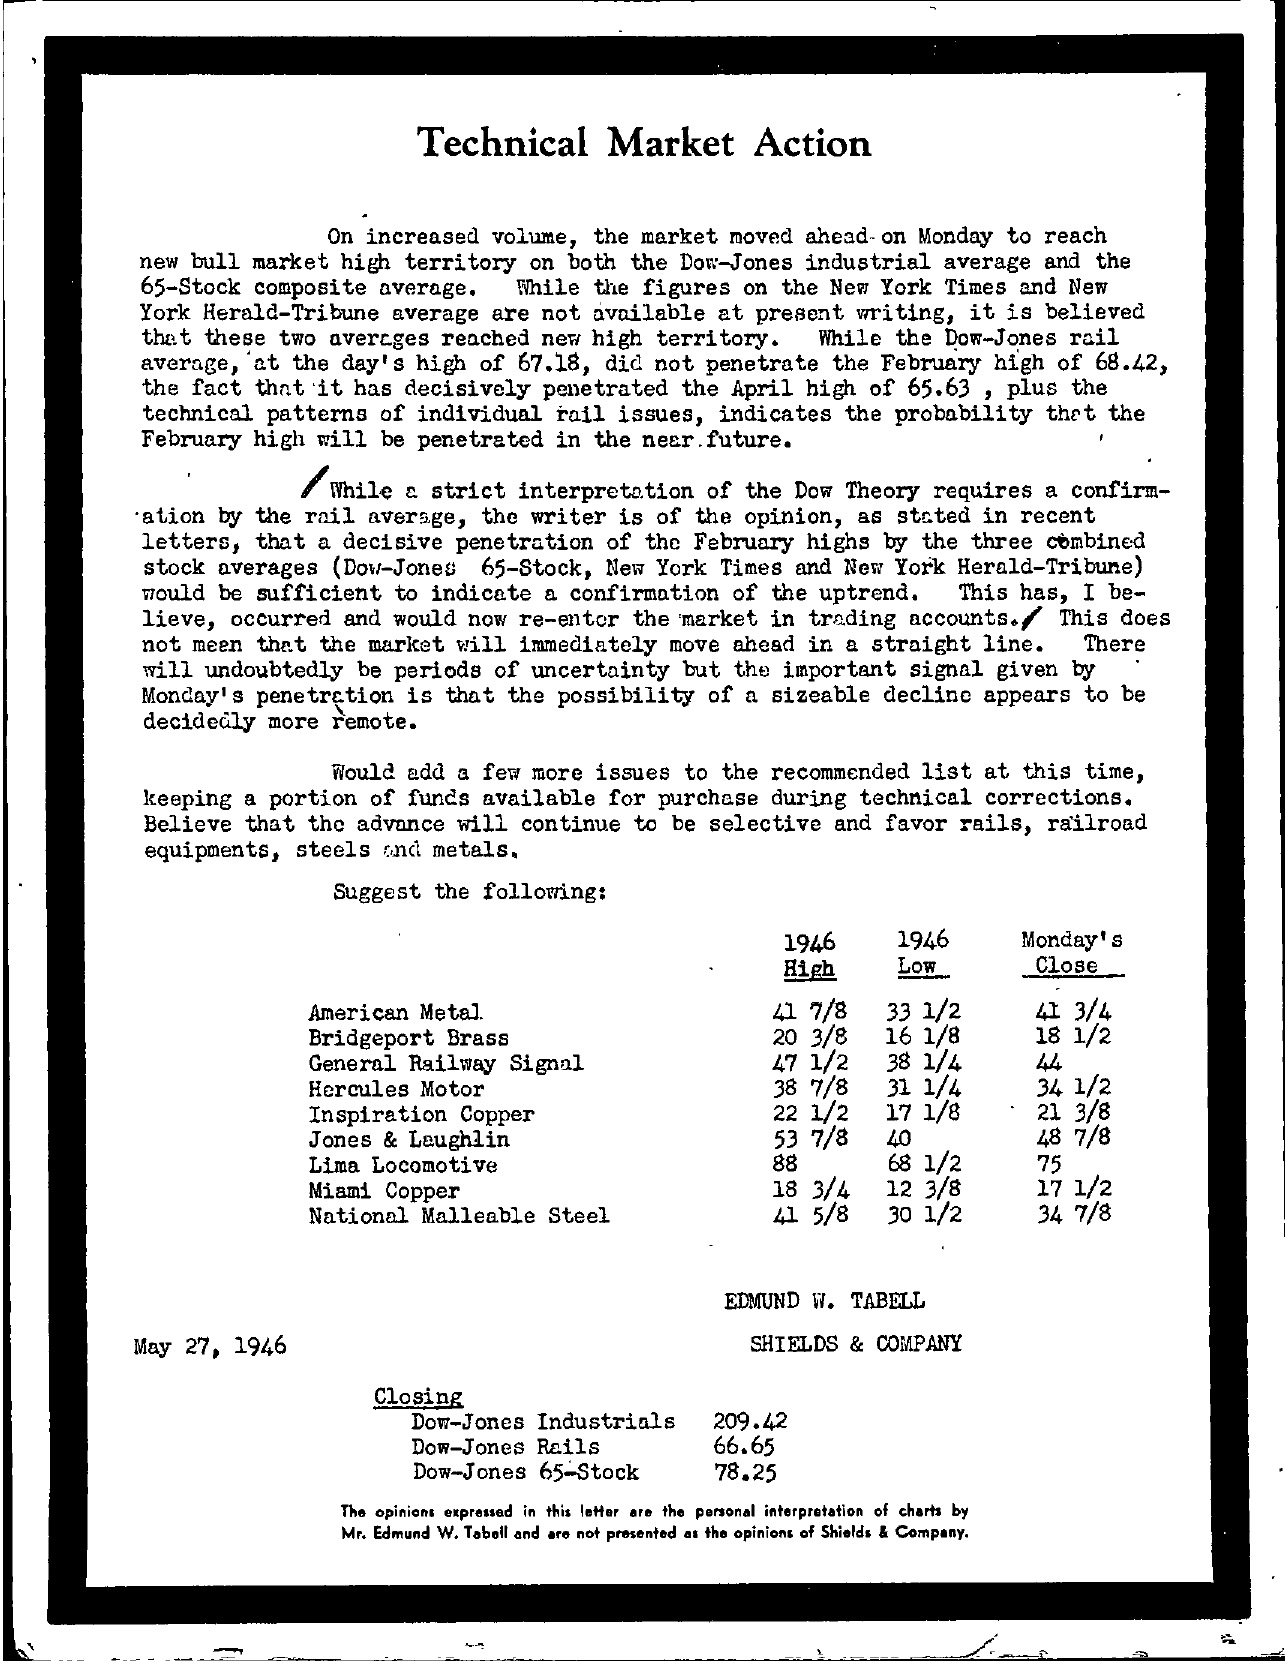 Tabell's Market Letter - May 27, 1946